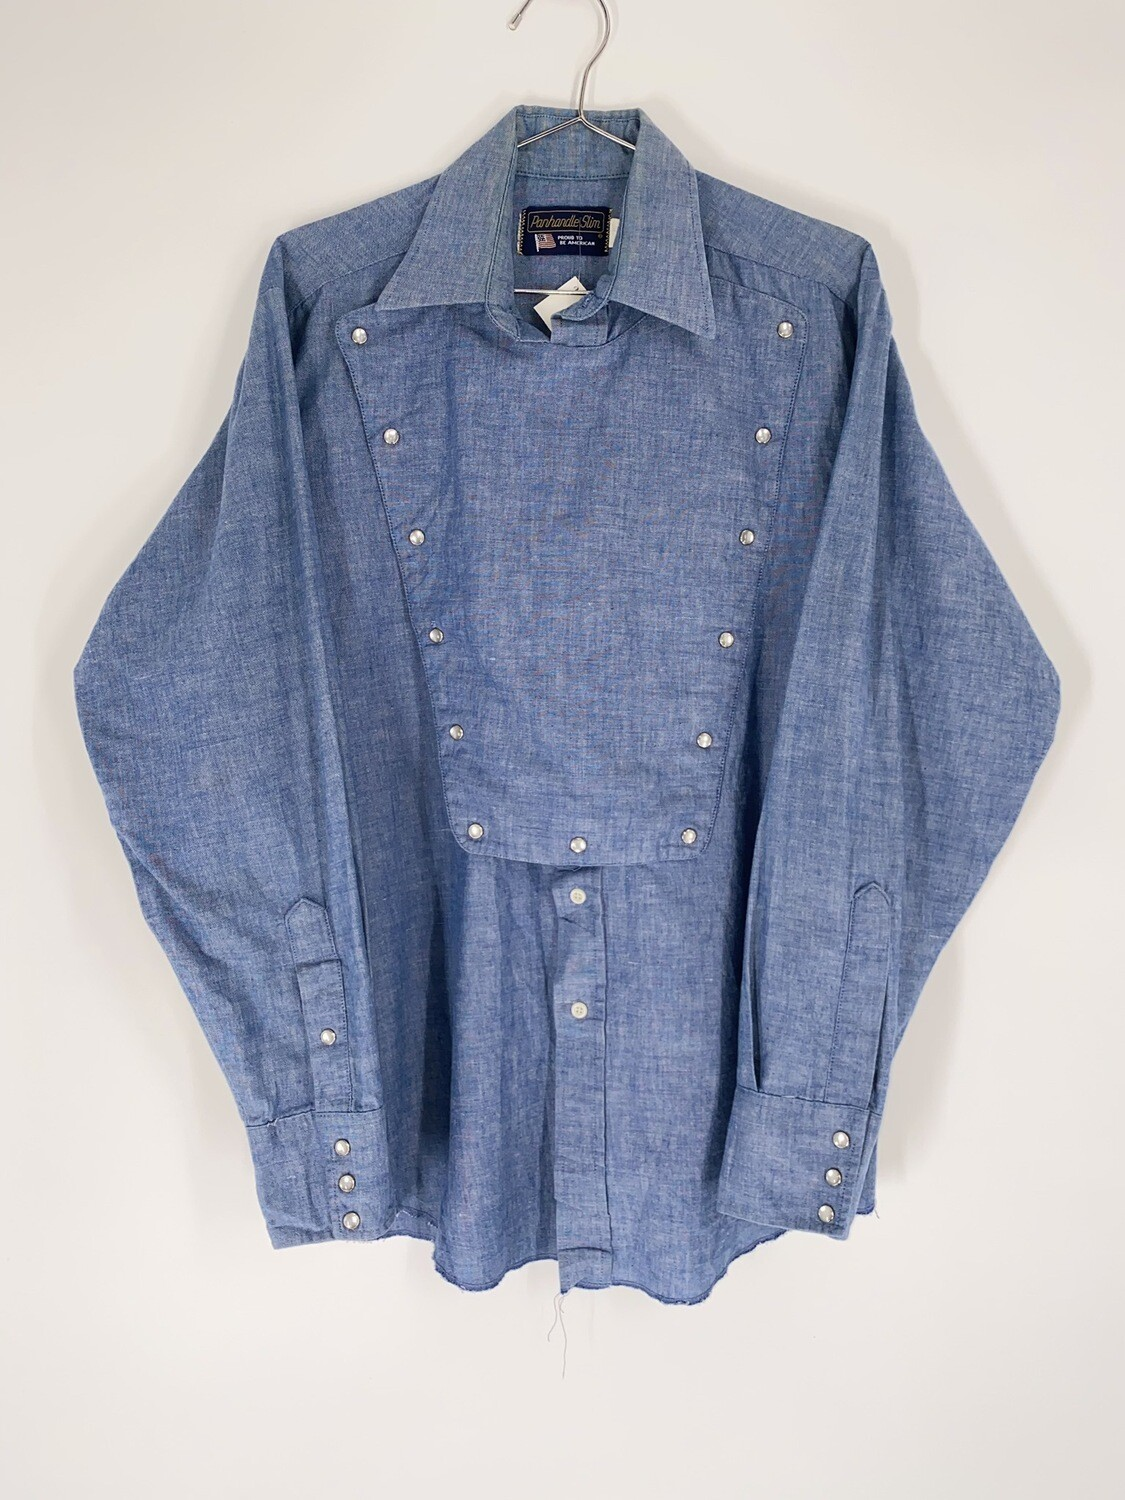 Panhandle Slim Blue Chambray Button Up Size M